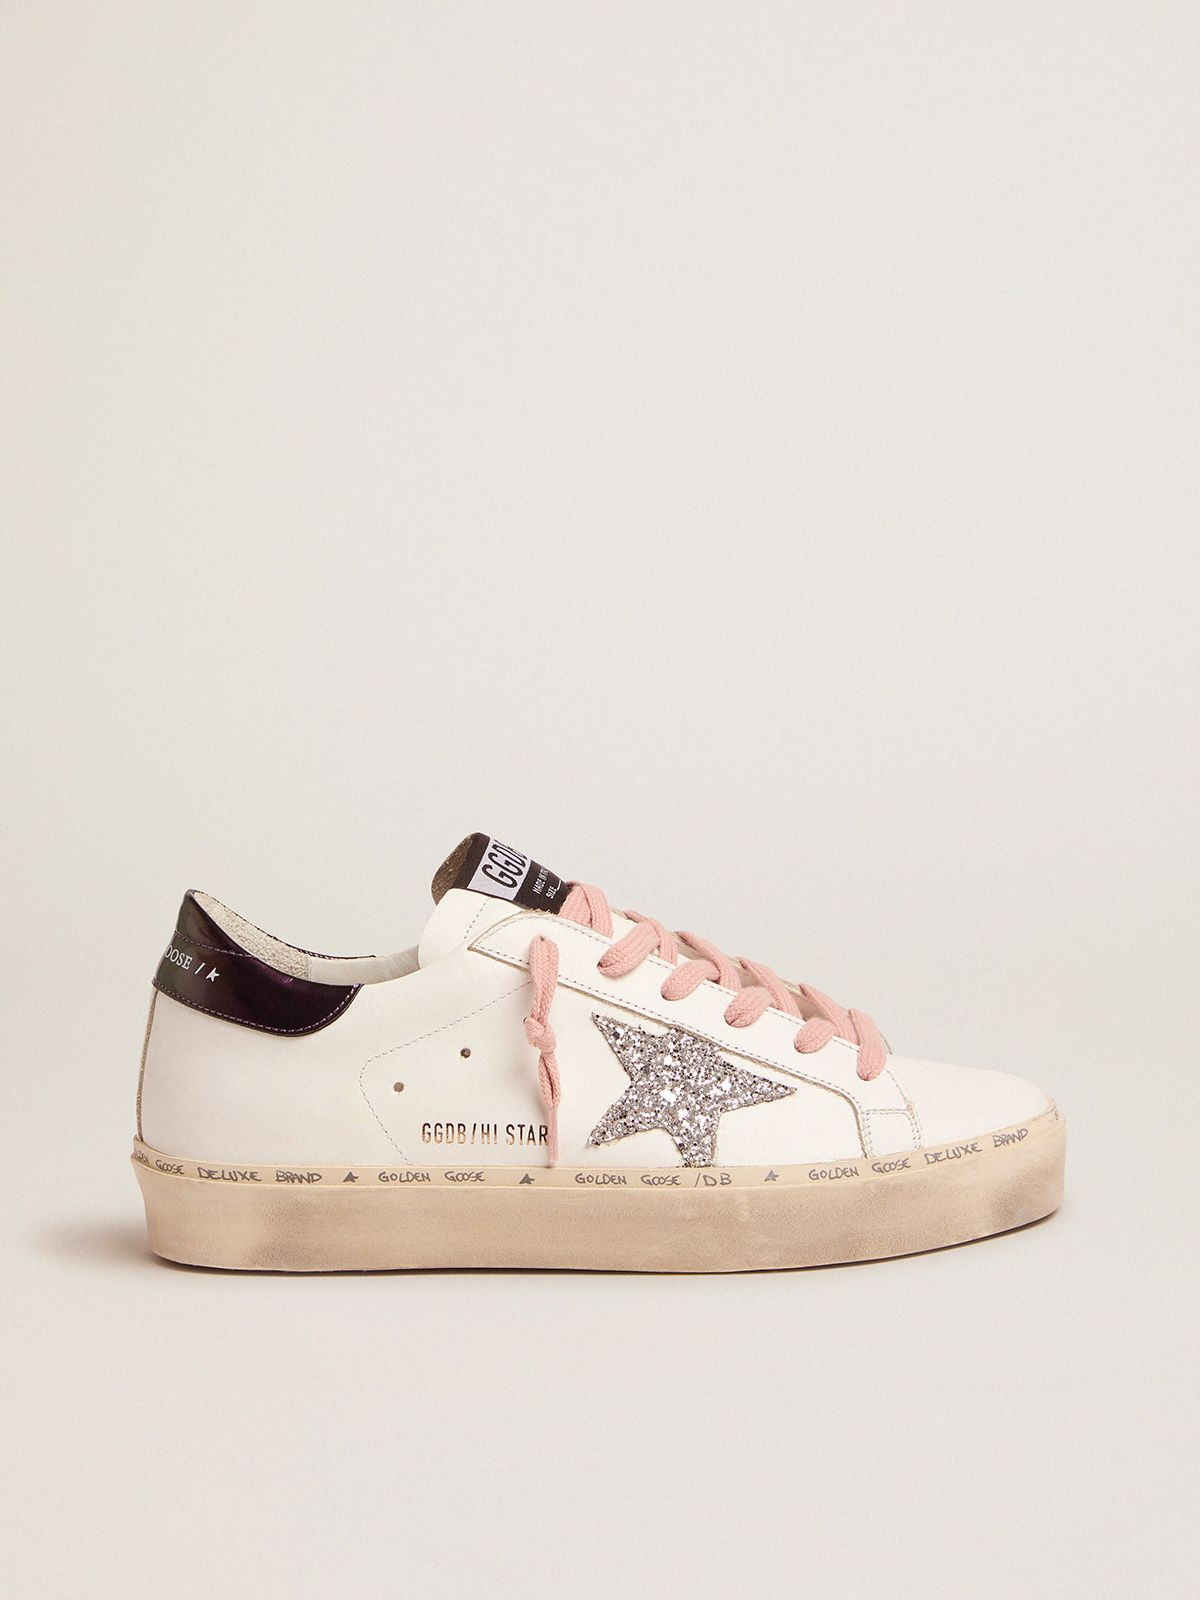 White Hi-Star sneakers with glittery star and pink laces